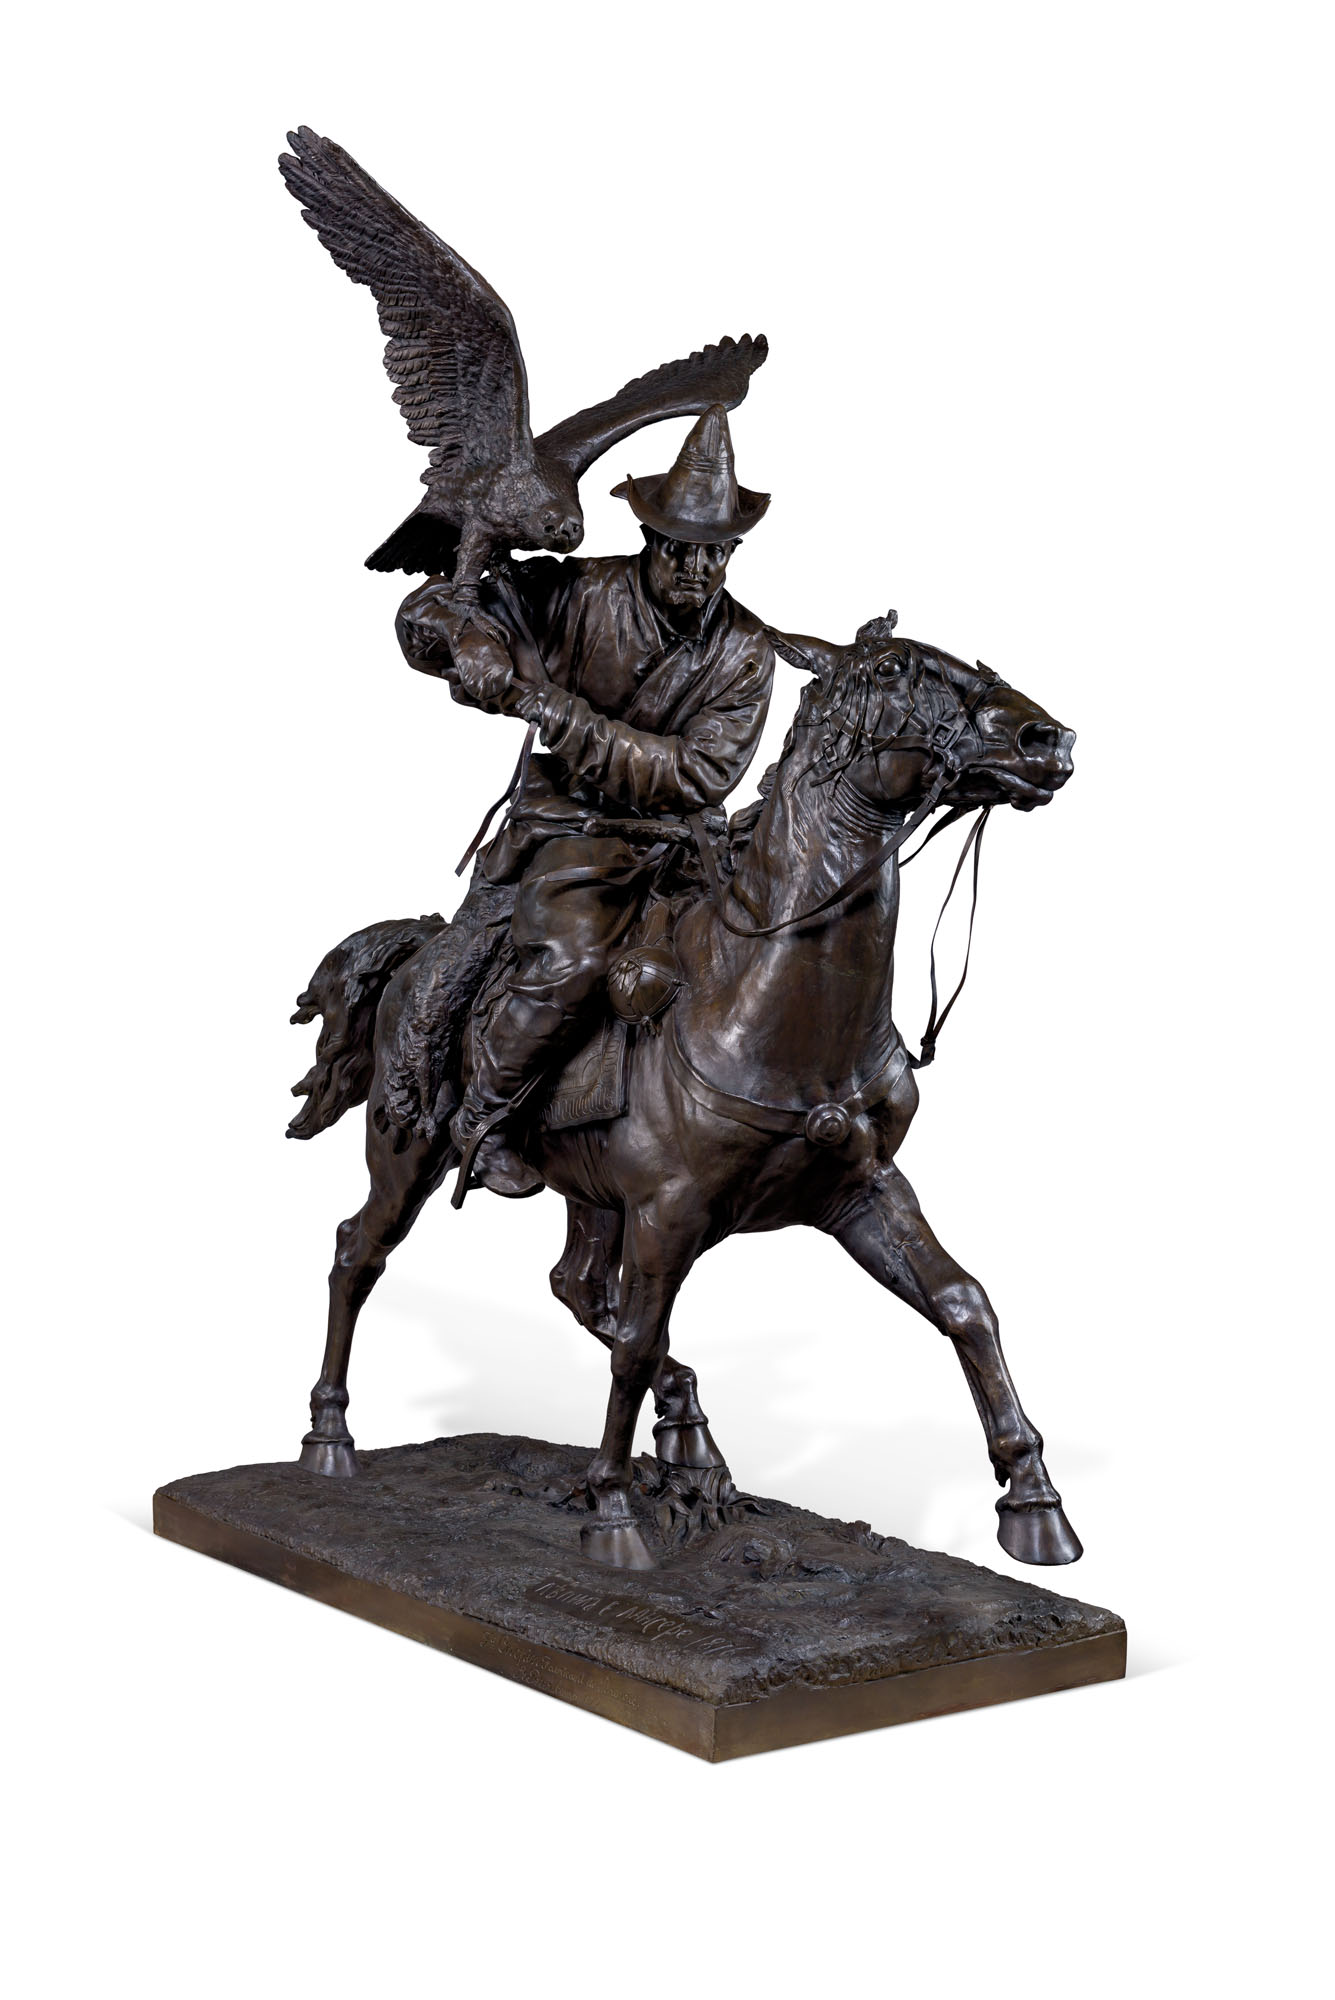 A MONUMENTAL AND VERY RARE BRONZE MODEL OF A KIRGHIZ WITH A GOLDEN EAGLE